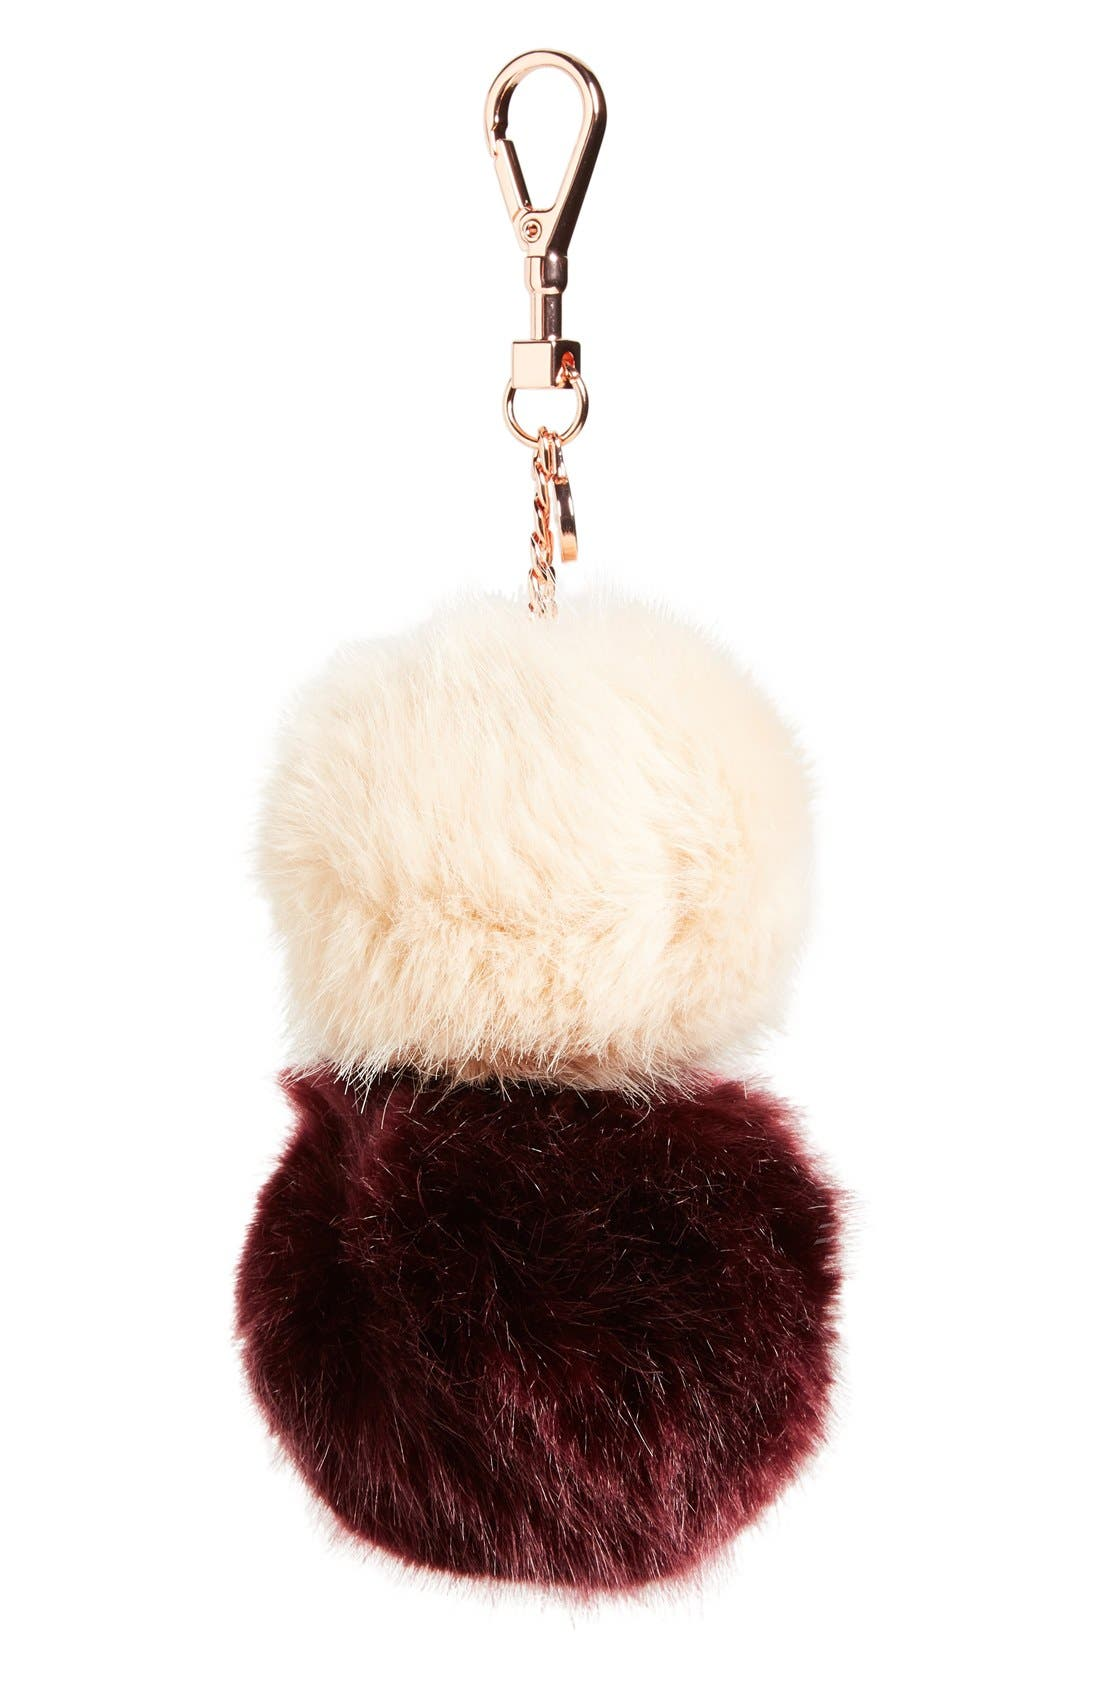 Alternate Image 1 Selected - Ted Baker London Faux Fur Bag Charm